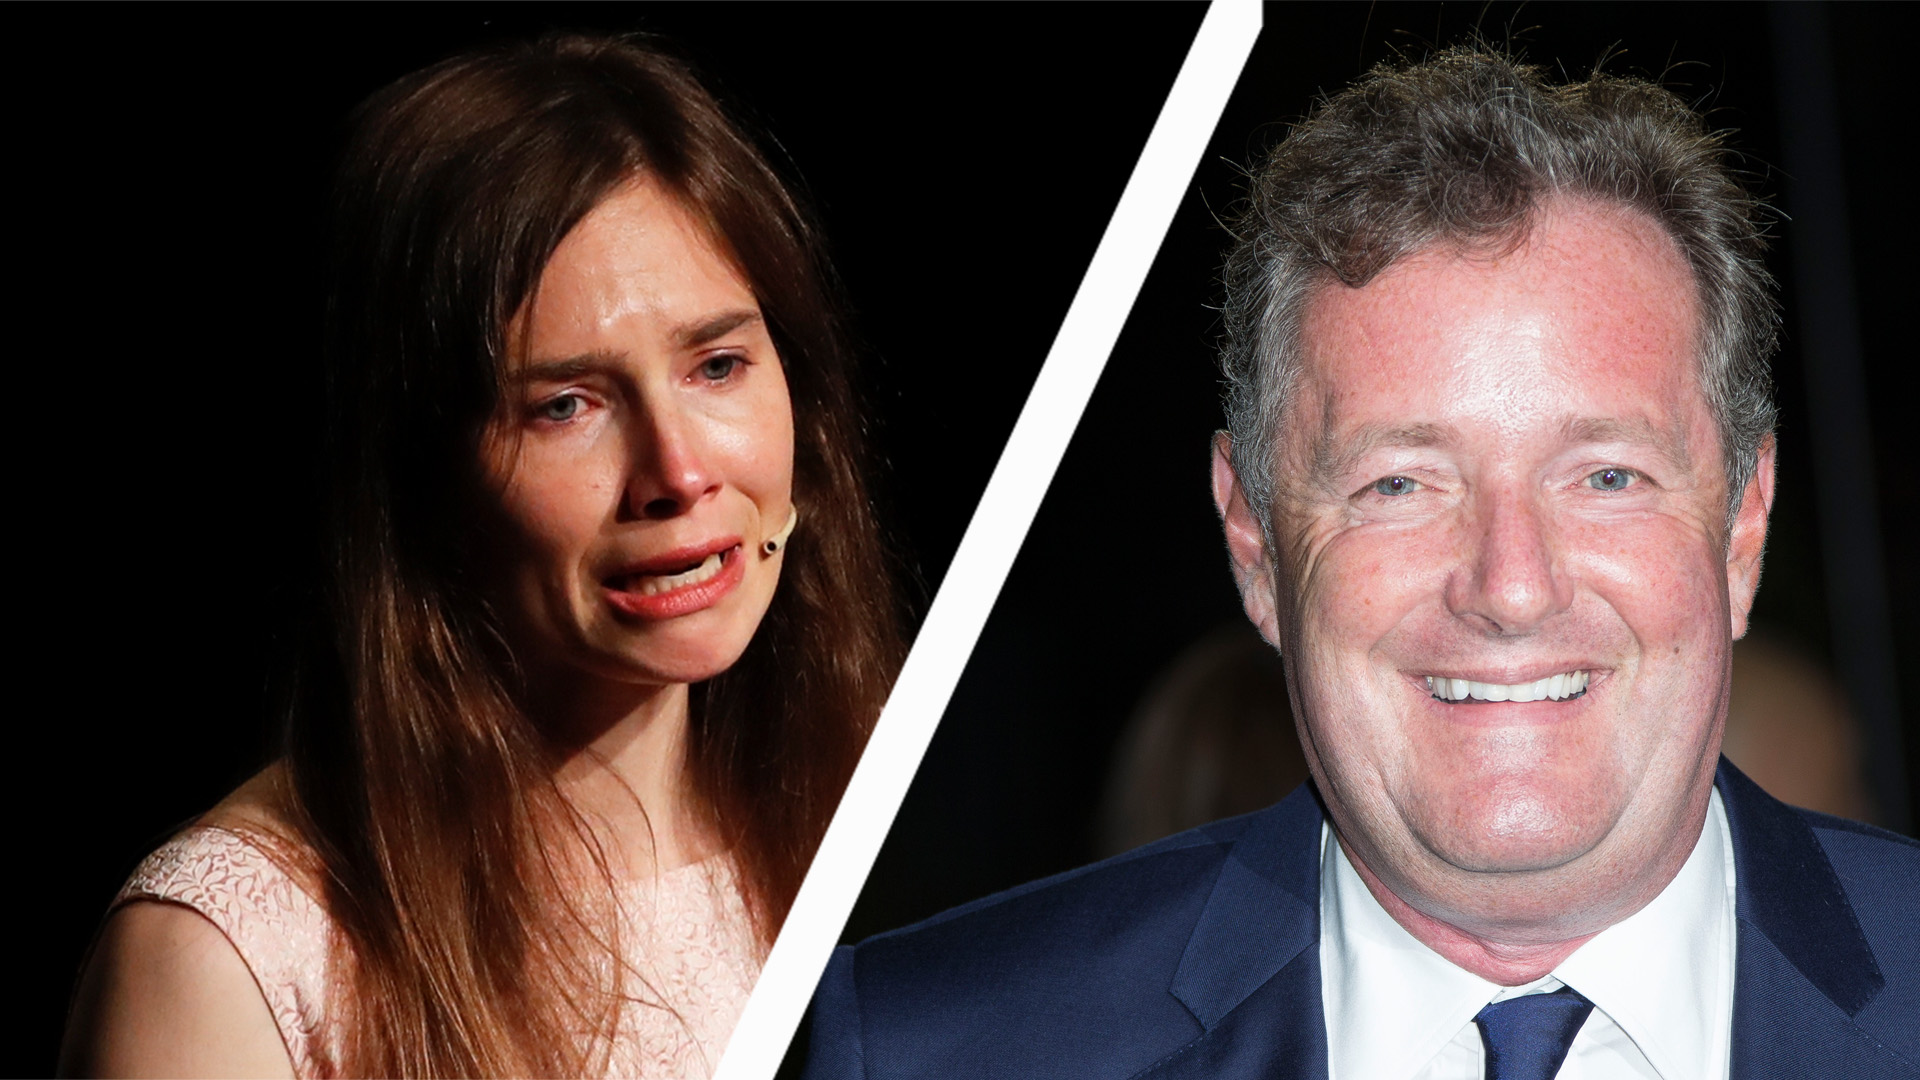 Amanda Knox and Piers Morgan have clashed over her claims she turned down an interview with him (Credit: AP)